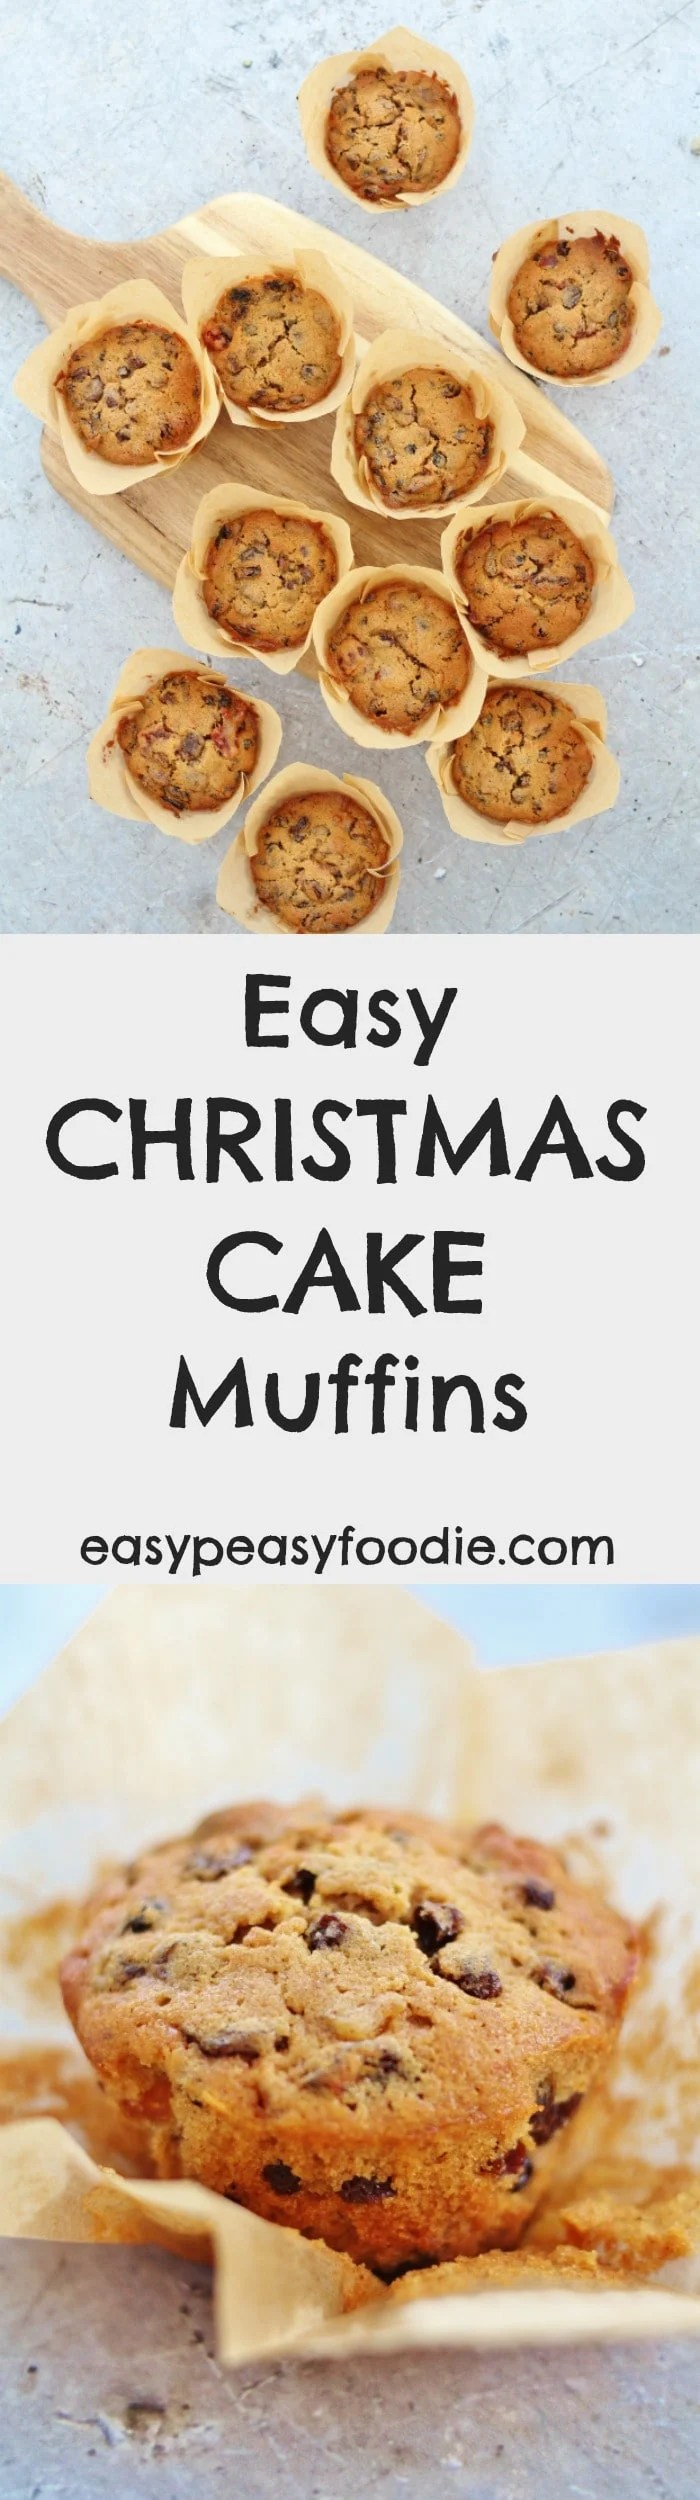 Fancy making homemade Christmas cake but don't have the time? Make my Easy Christmas Cake Muffins instead! These cute mini Christmas cakes have all the flavours of a traditional Christmas cake but take just 45 minutes from start to finish. As a bonus they are gluten free, nut free, alcohol free and can easily be made dairy free too. #christmascake #christmascakemuffins #christmasmuffins #glutenfreechristmascake #nutfreechristmascake #alcoholfreechristmascake #christmasrecipes #easypeasyfoodie